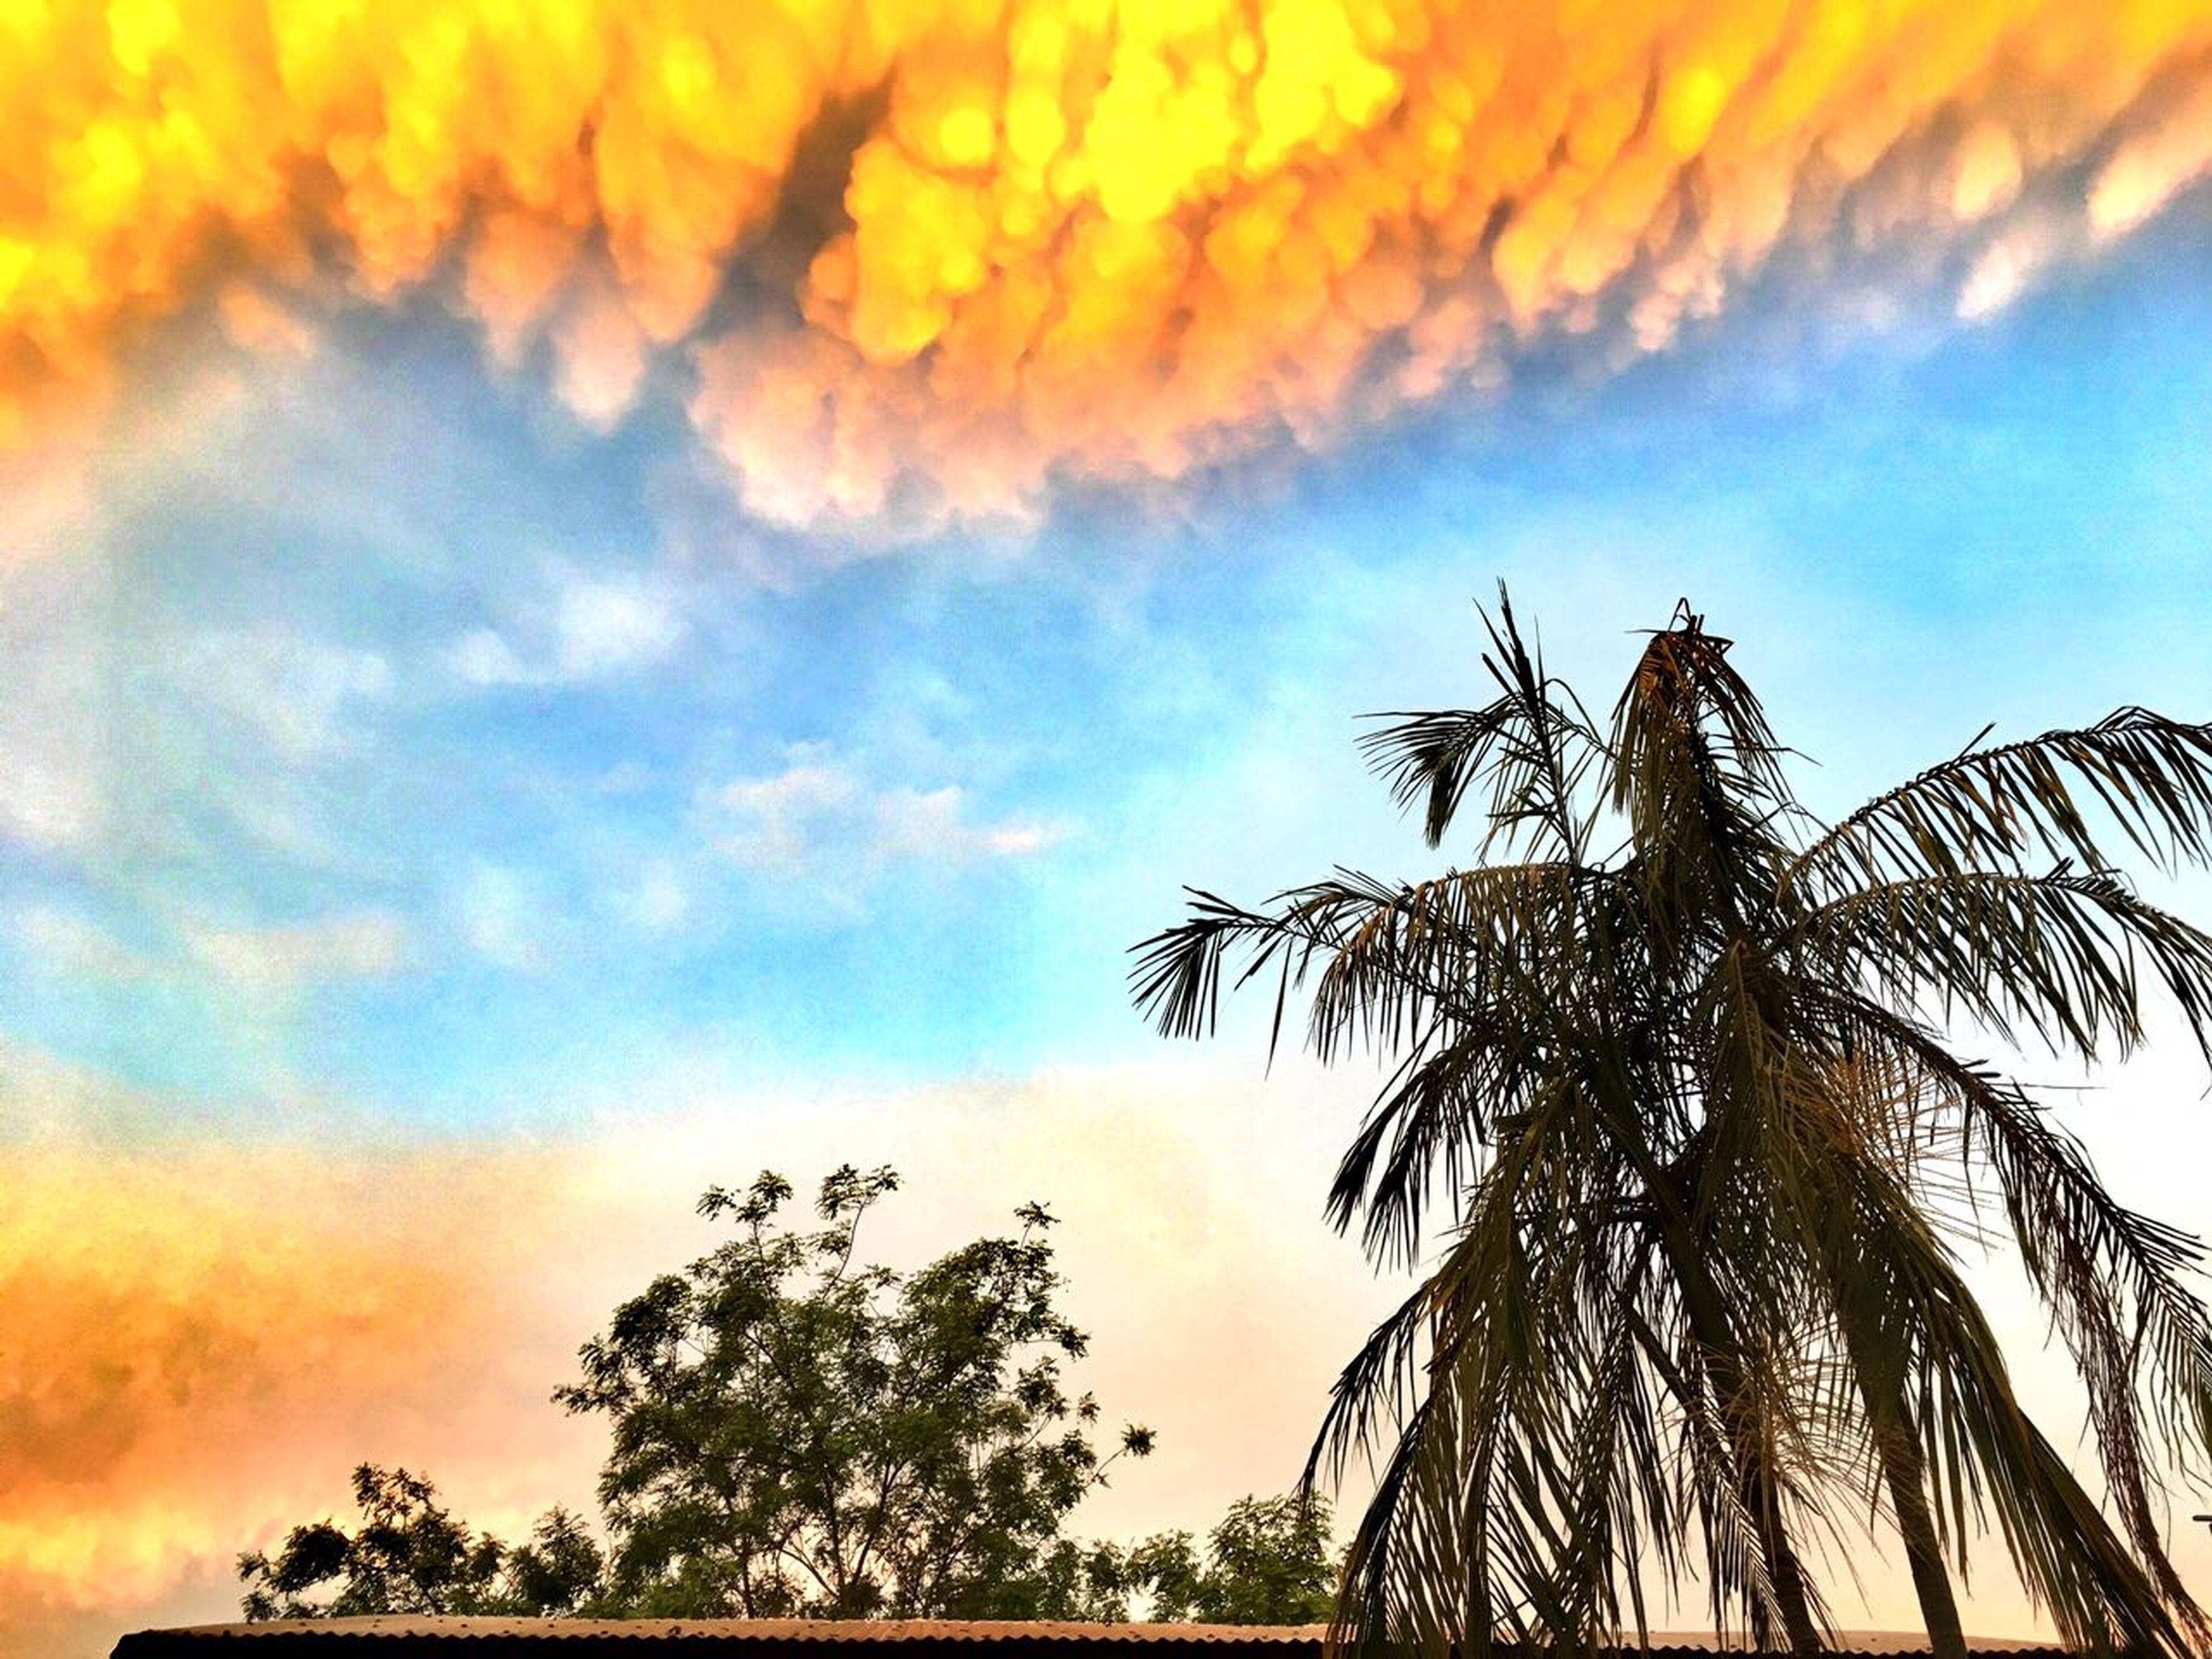 tree, sky, nature, low angle view, cloud - sky, no people, beauty in nature, palm tree, growth, branch, sunset, scenics, outdoors, tranquility, day